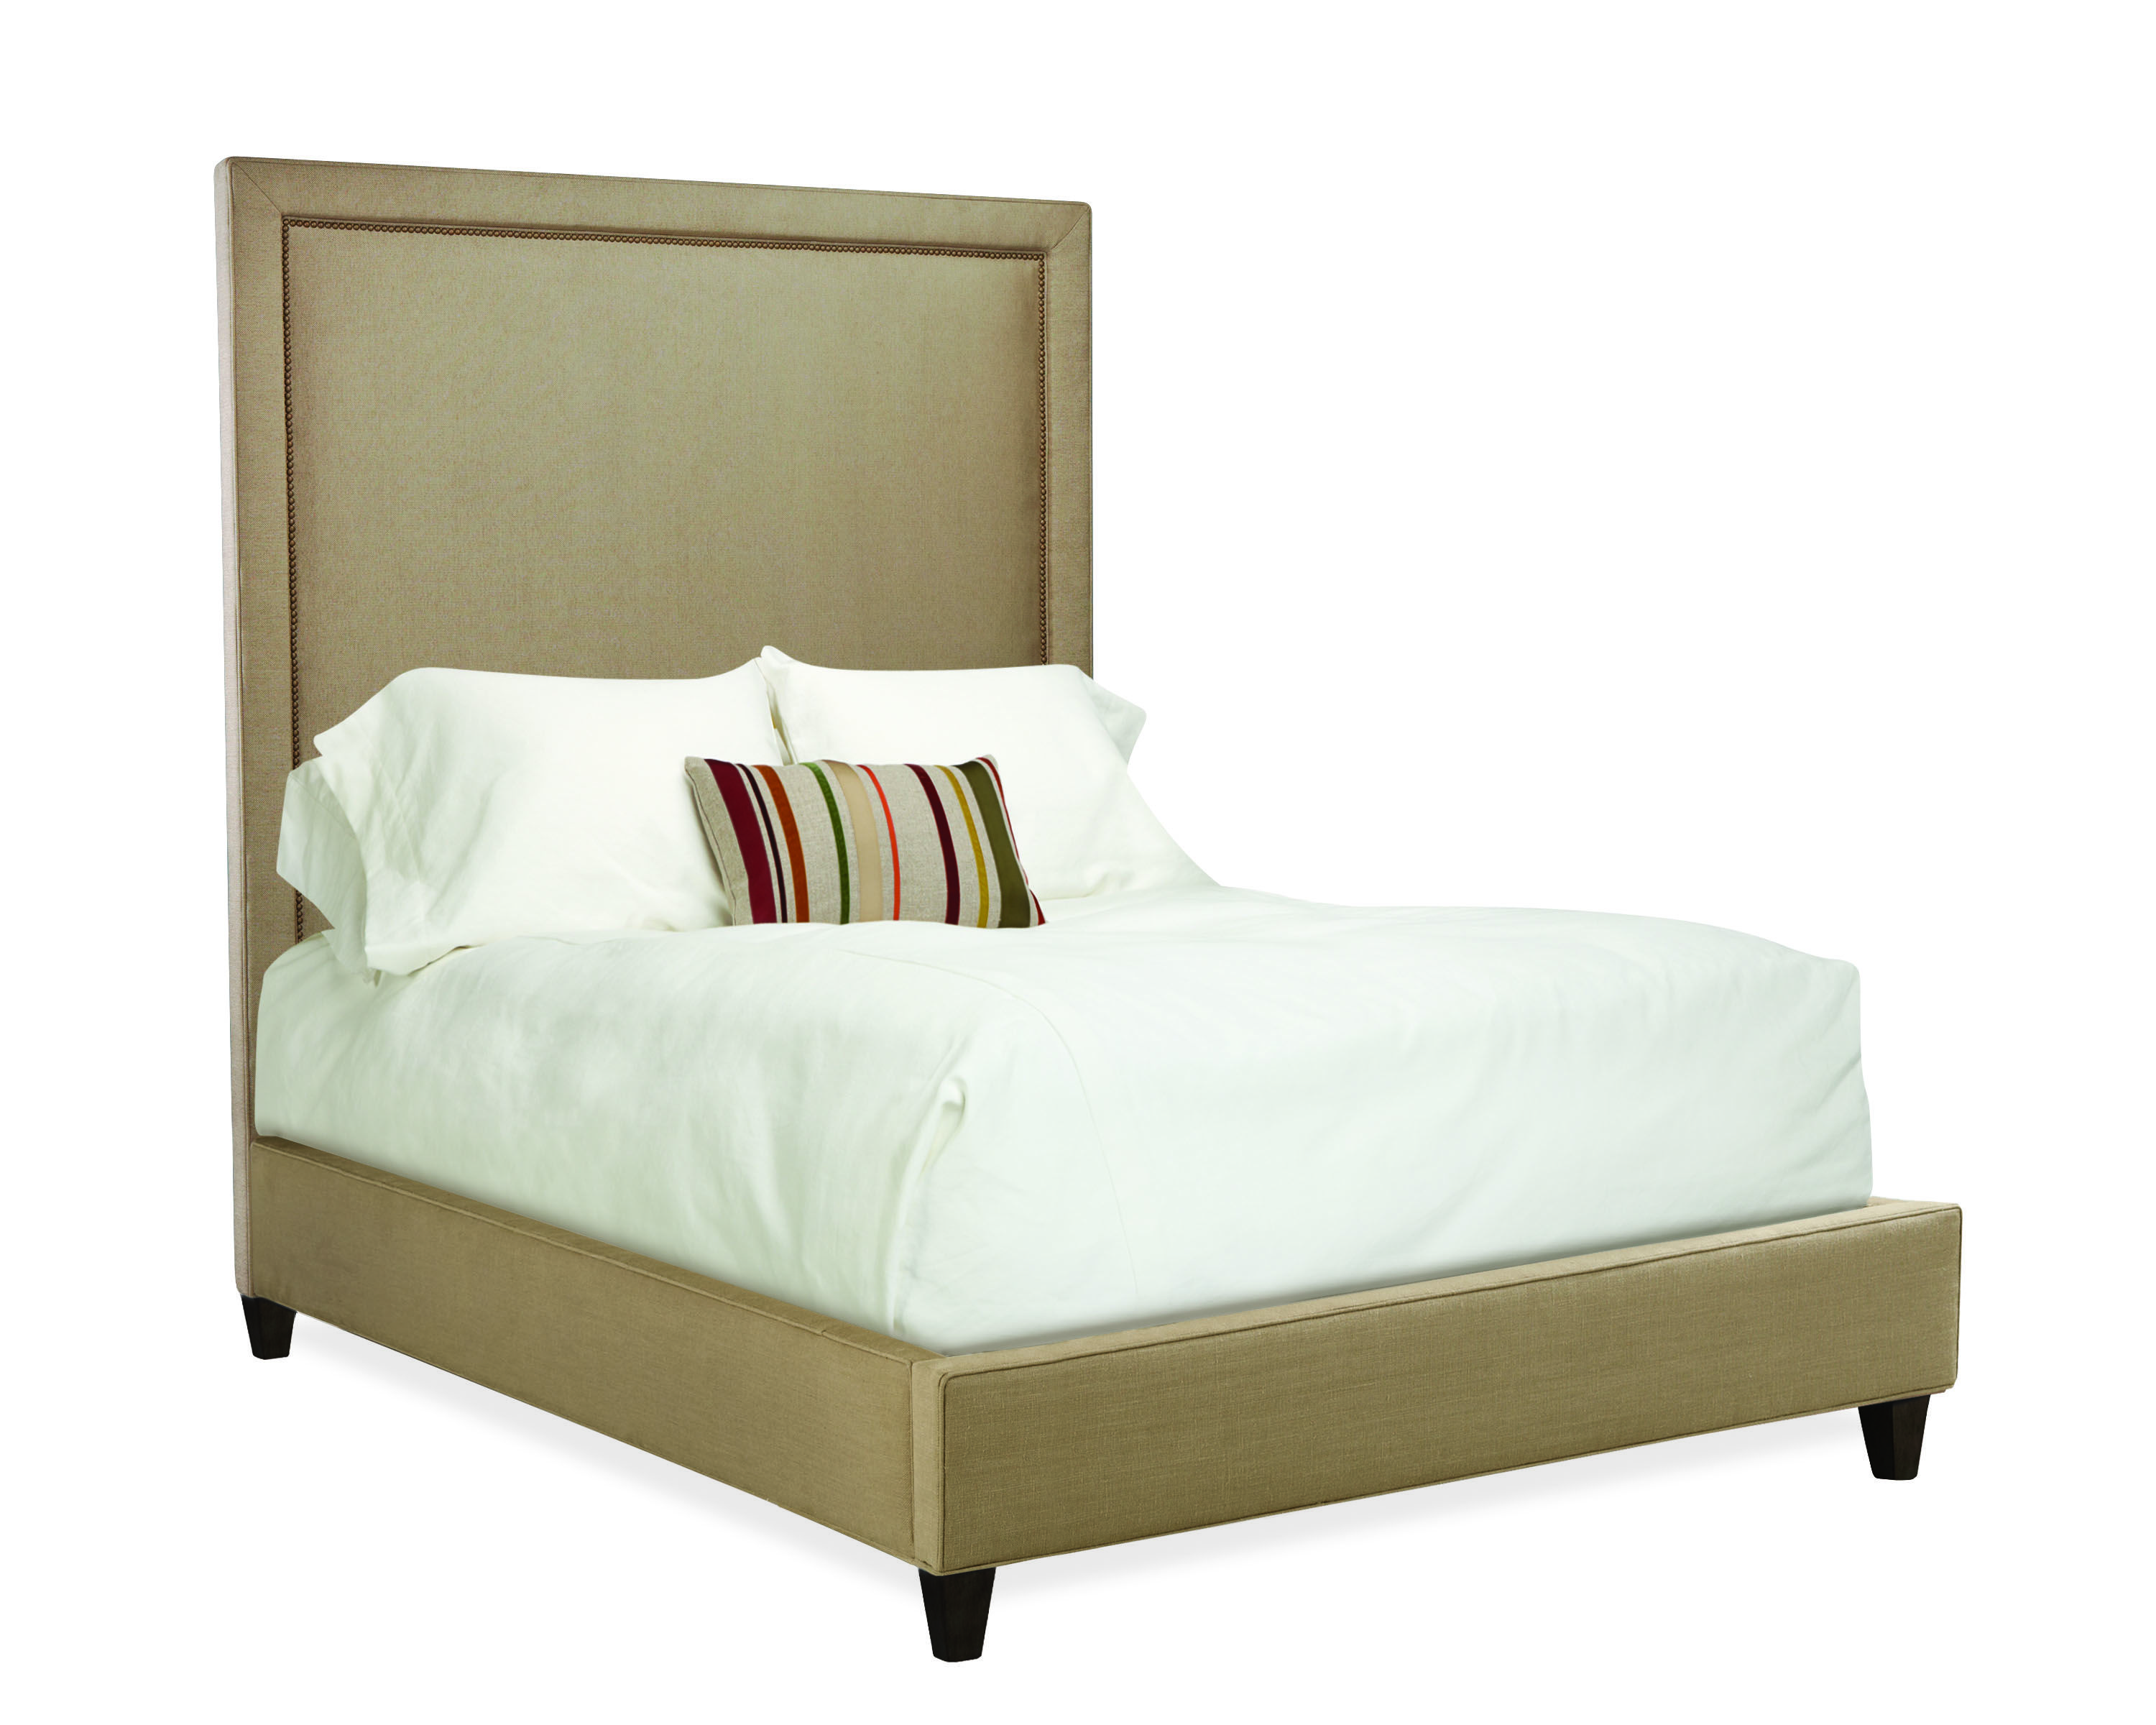 Lee Industries Square Headboard With Rails And Nail Head